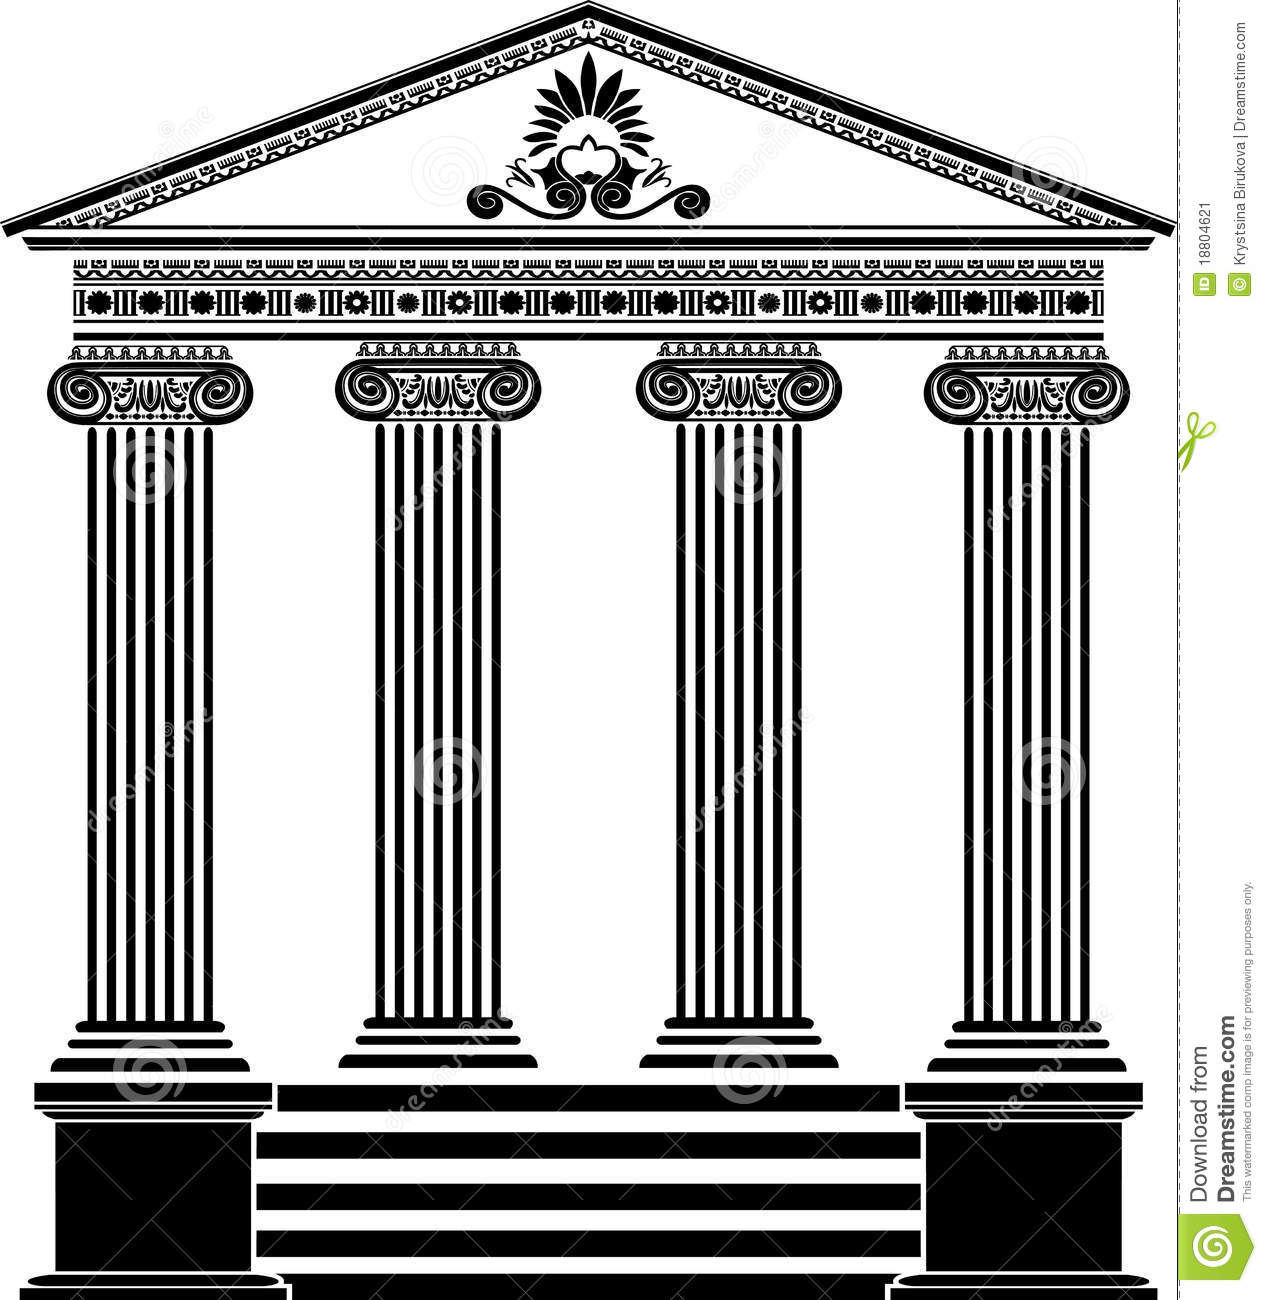 Greek temple clipart free graphic black and white download Greek Temple Stencil Stock Images - Image: 18288214 graphic black and white download